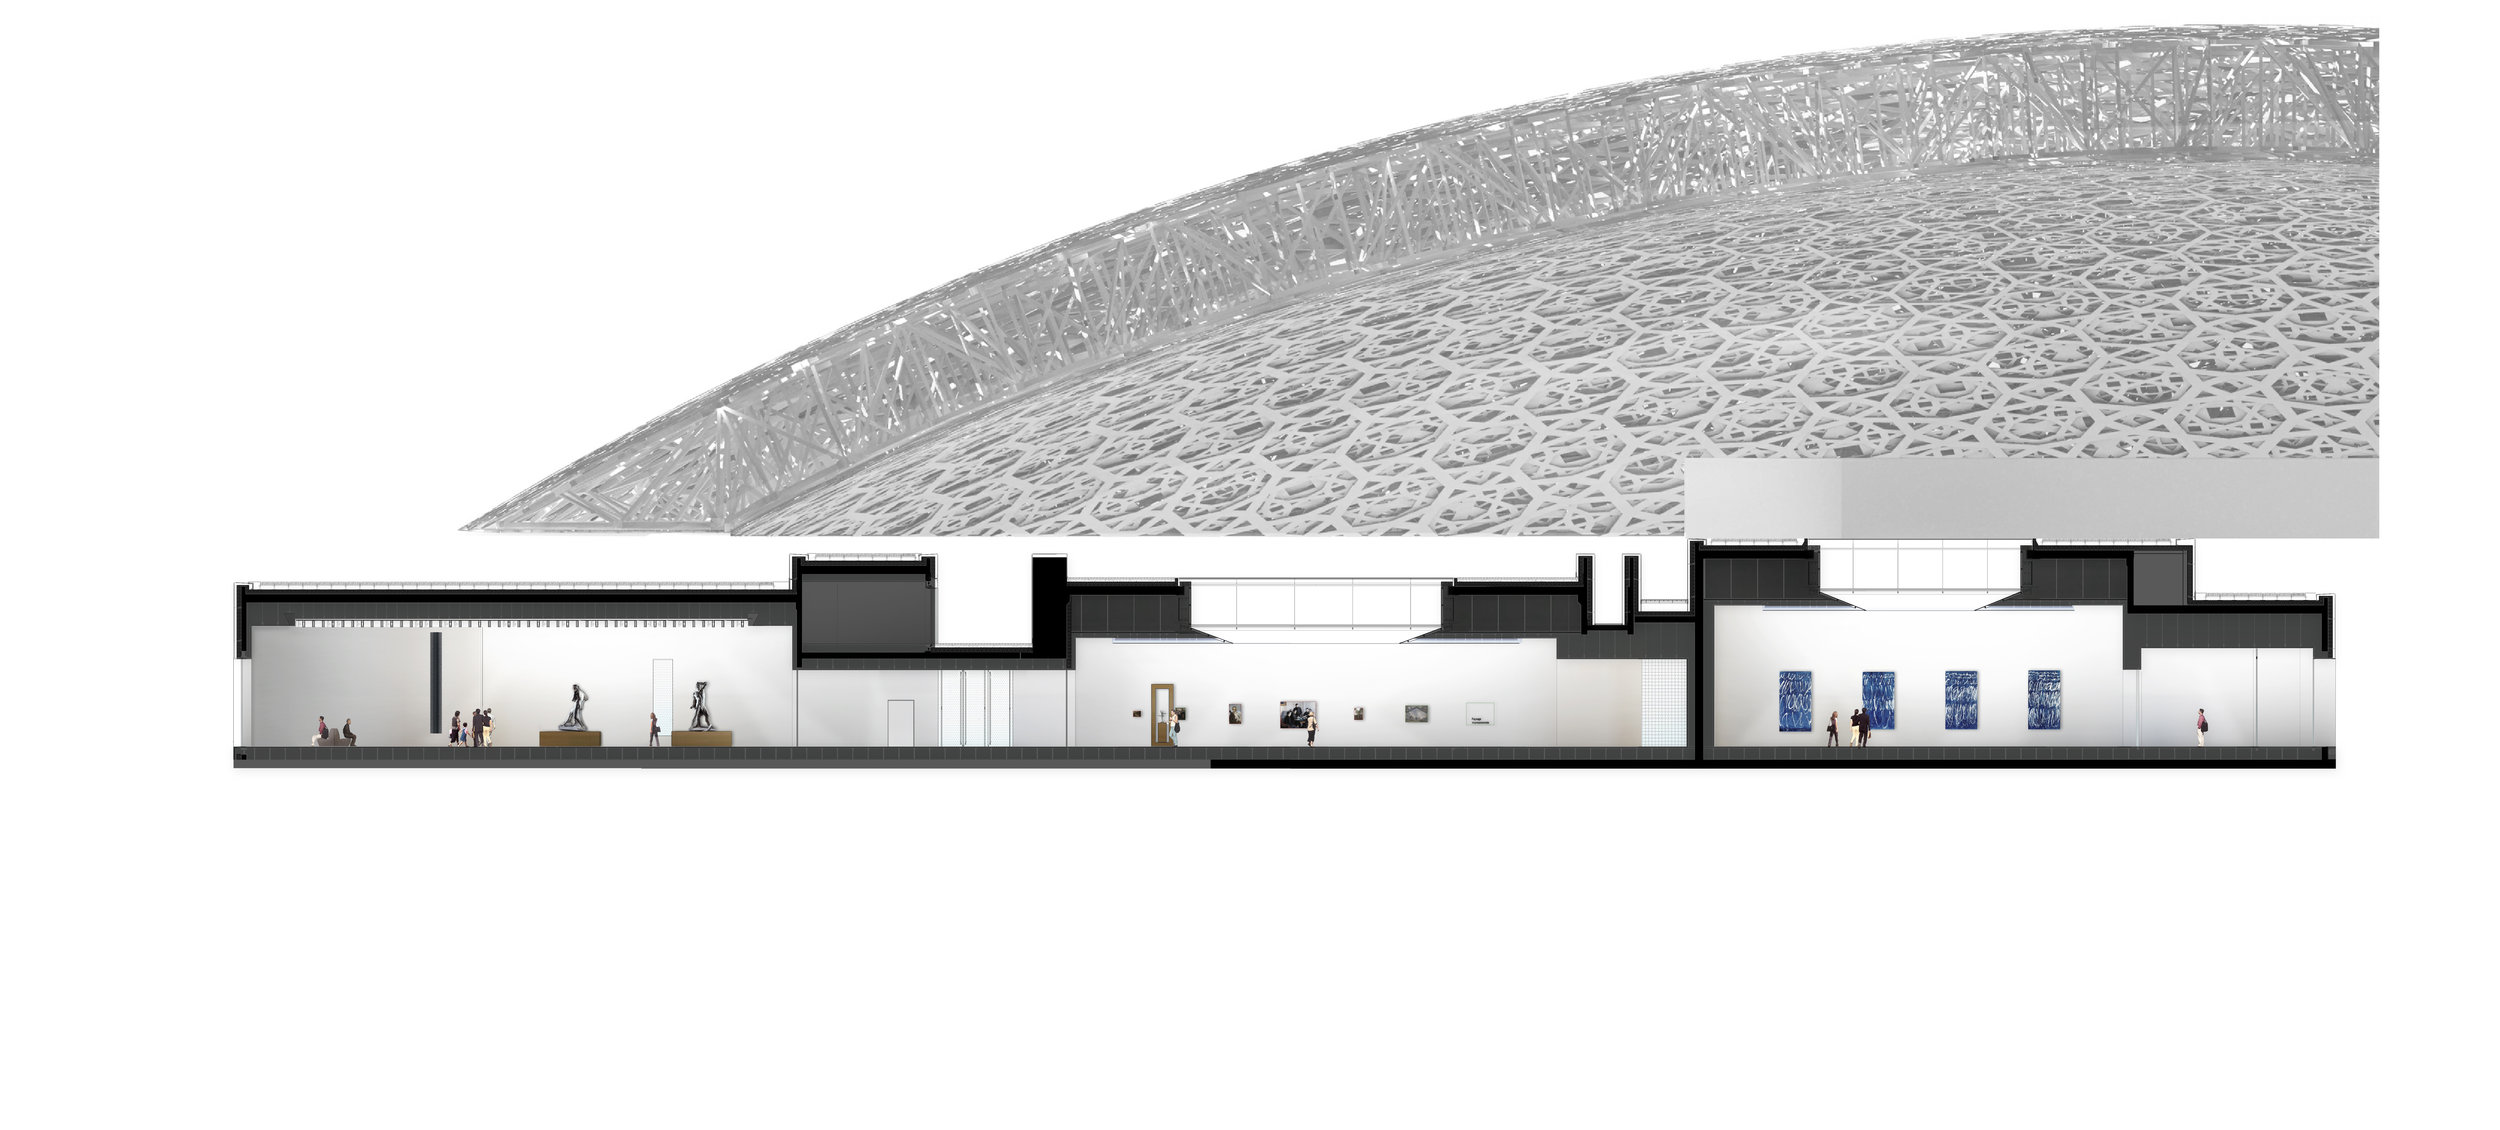 The dome of the Louvre Abu Dhabi appears to float, an illusion achieved through an engineering feat employing four earthquake-proof supports